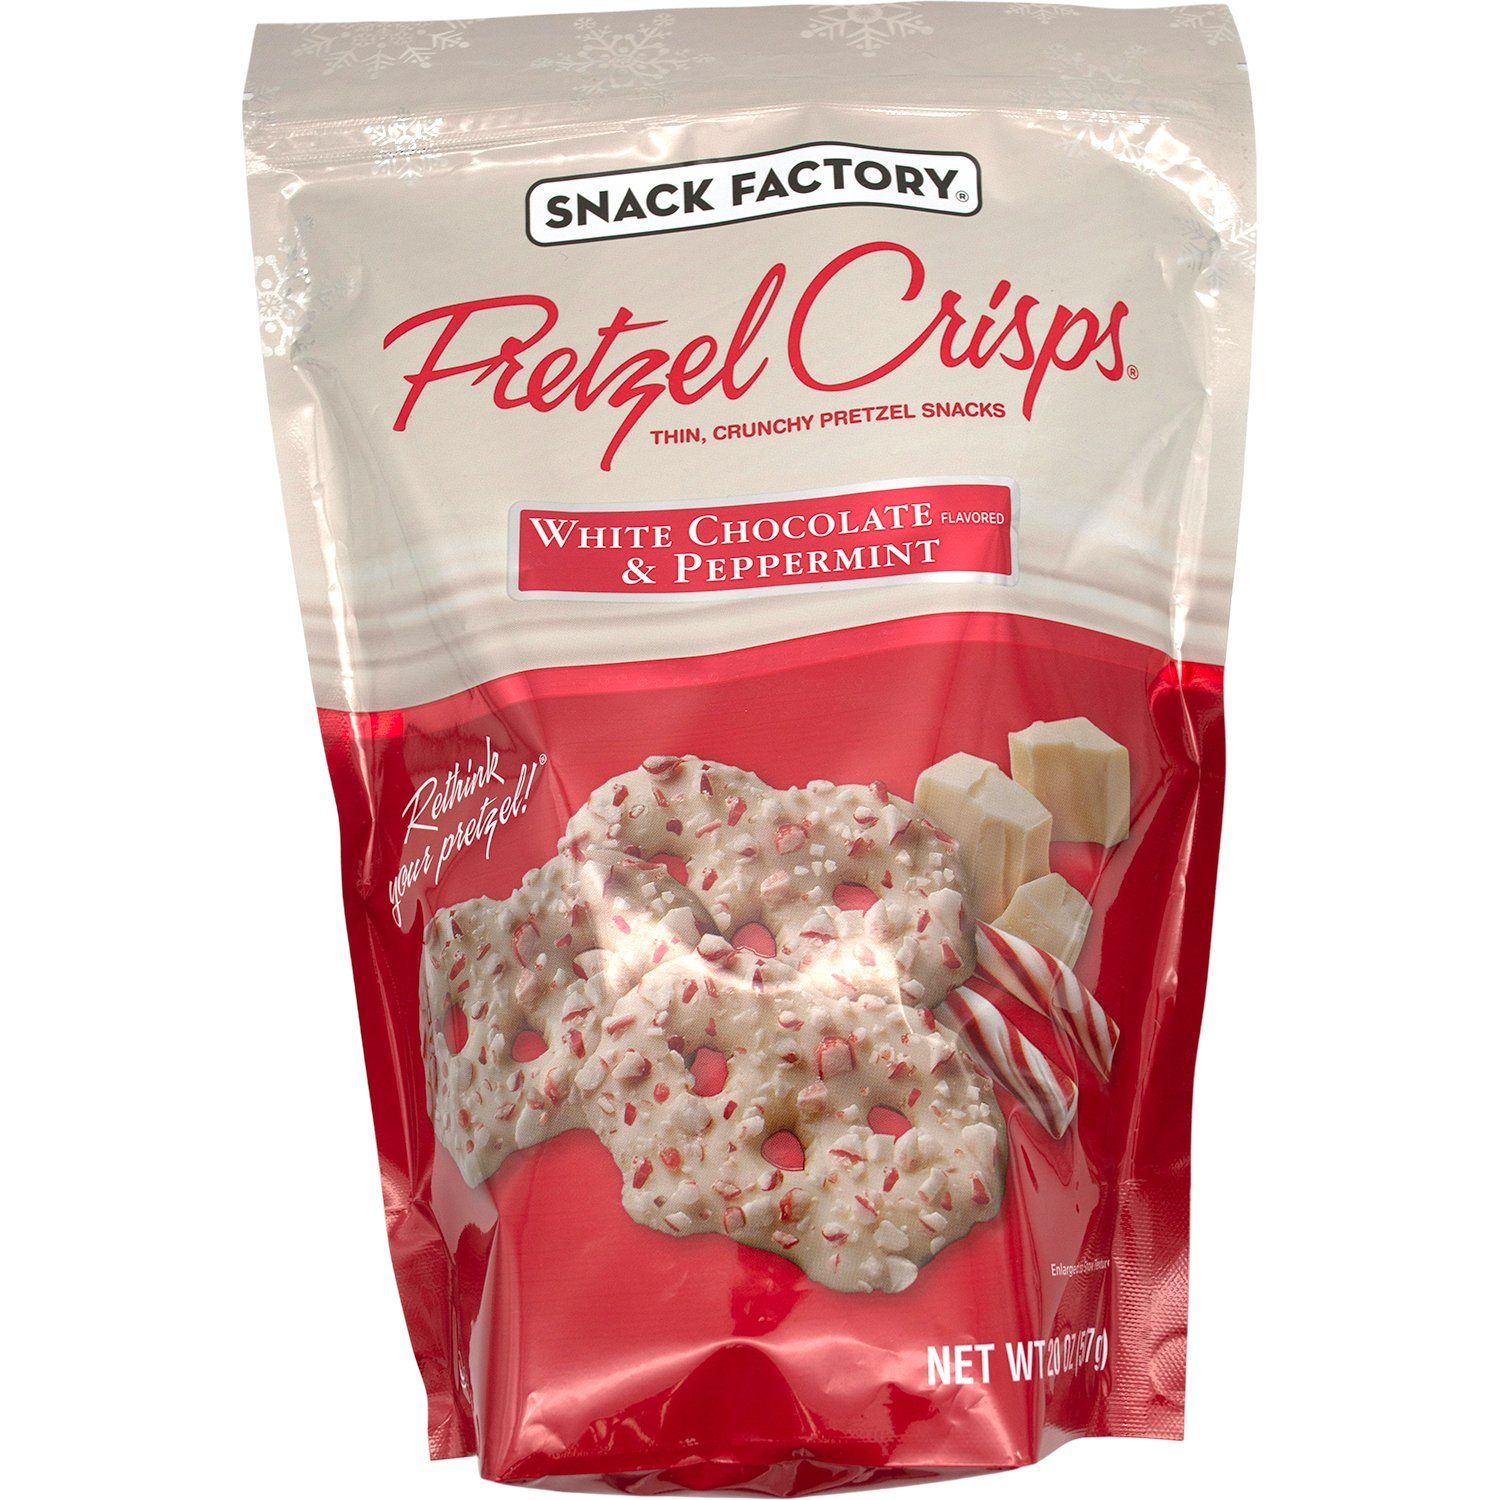 Snack Factory Pretzel Crisps White Chocolate & Peppermint Meltable Snack Factory 20 Ounce